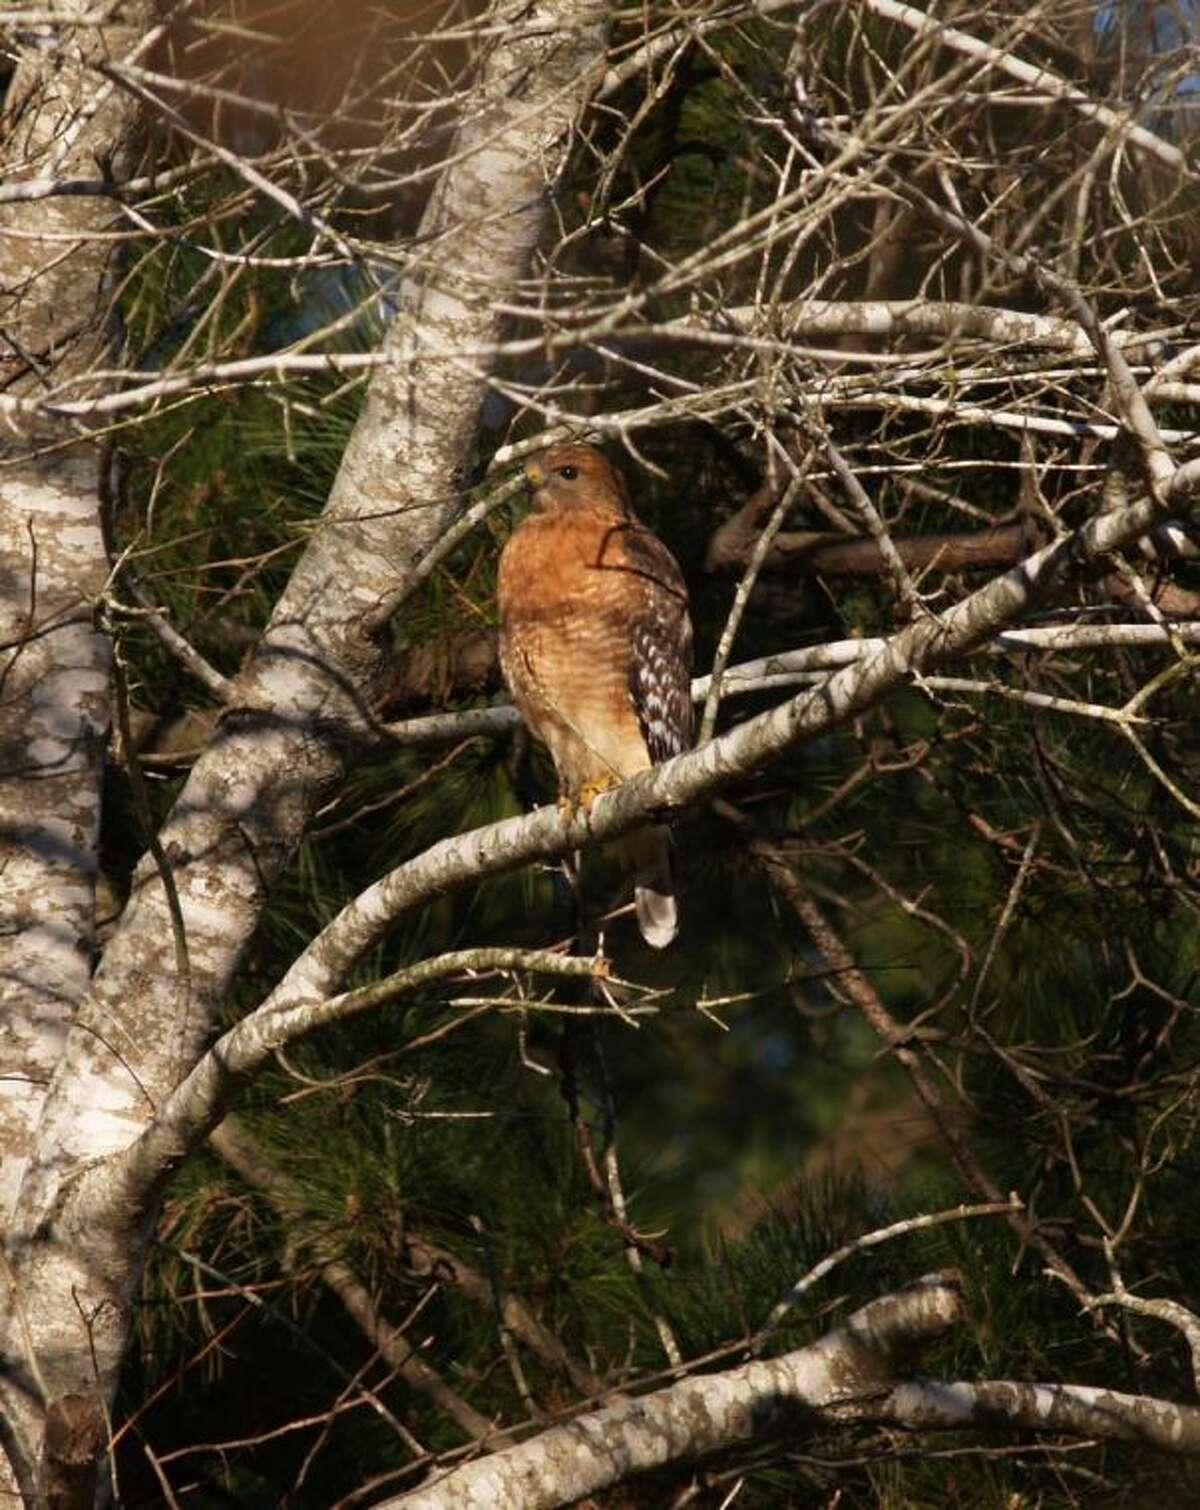 This beautiful red hawk was sitting undisturbed in a tree as my grandchildren and I were on a hiking trip in the Sam Houston National Forest.